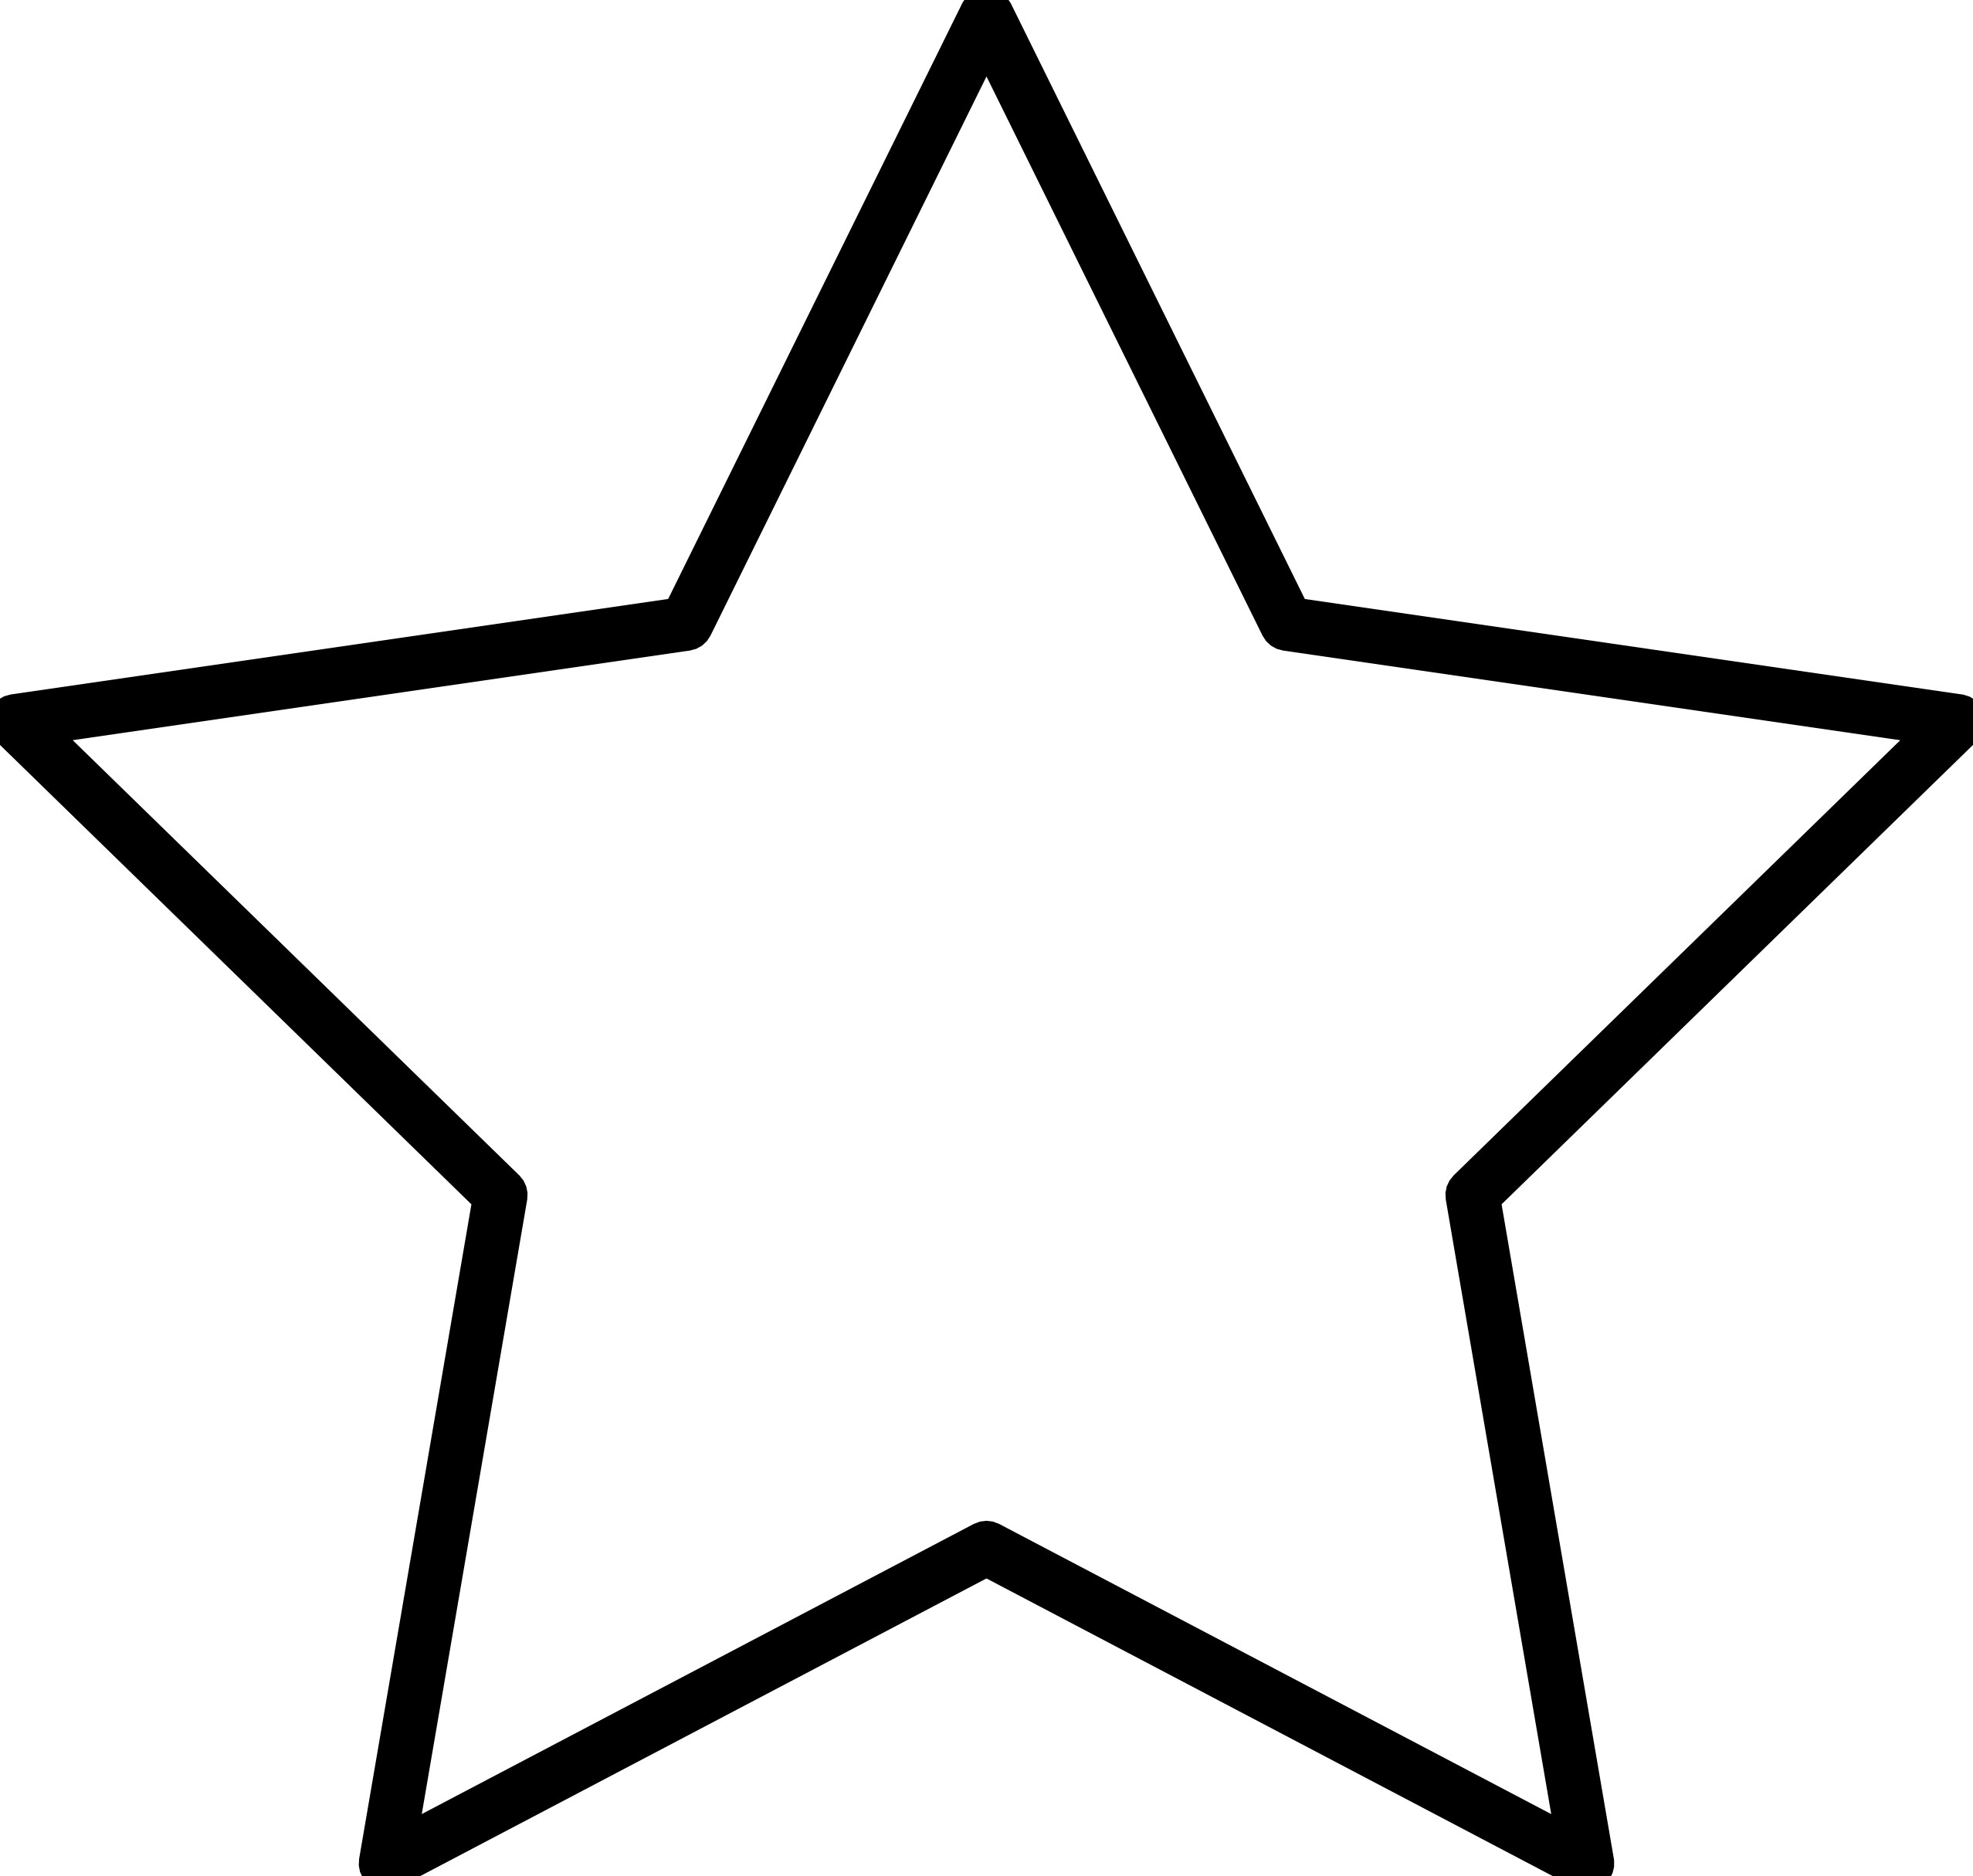 Star Clipart Black And White-star clipart black and white-8